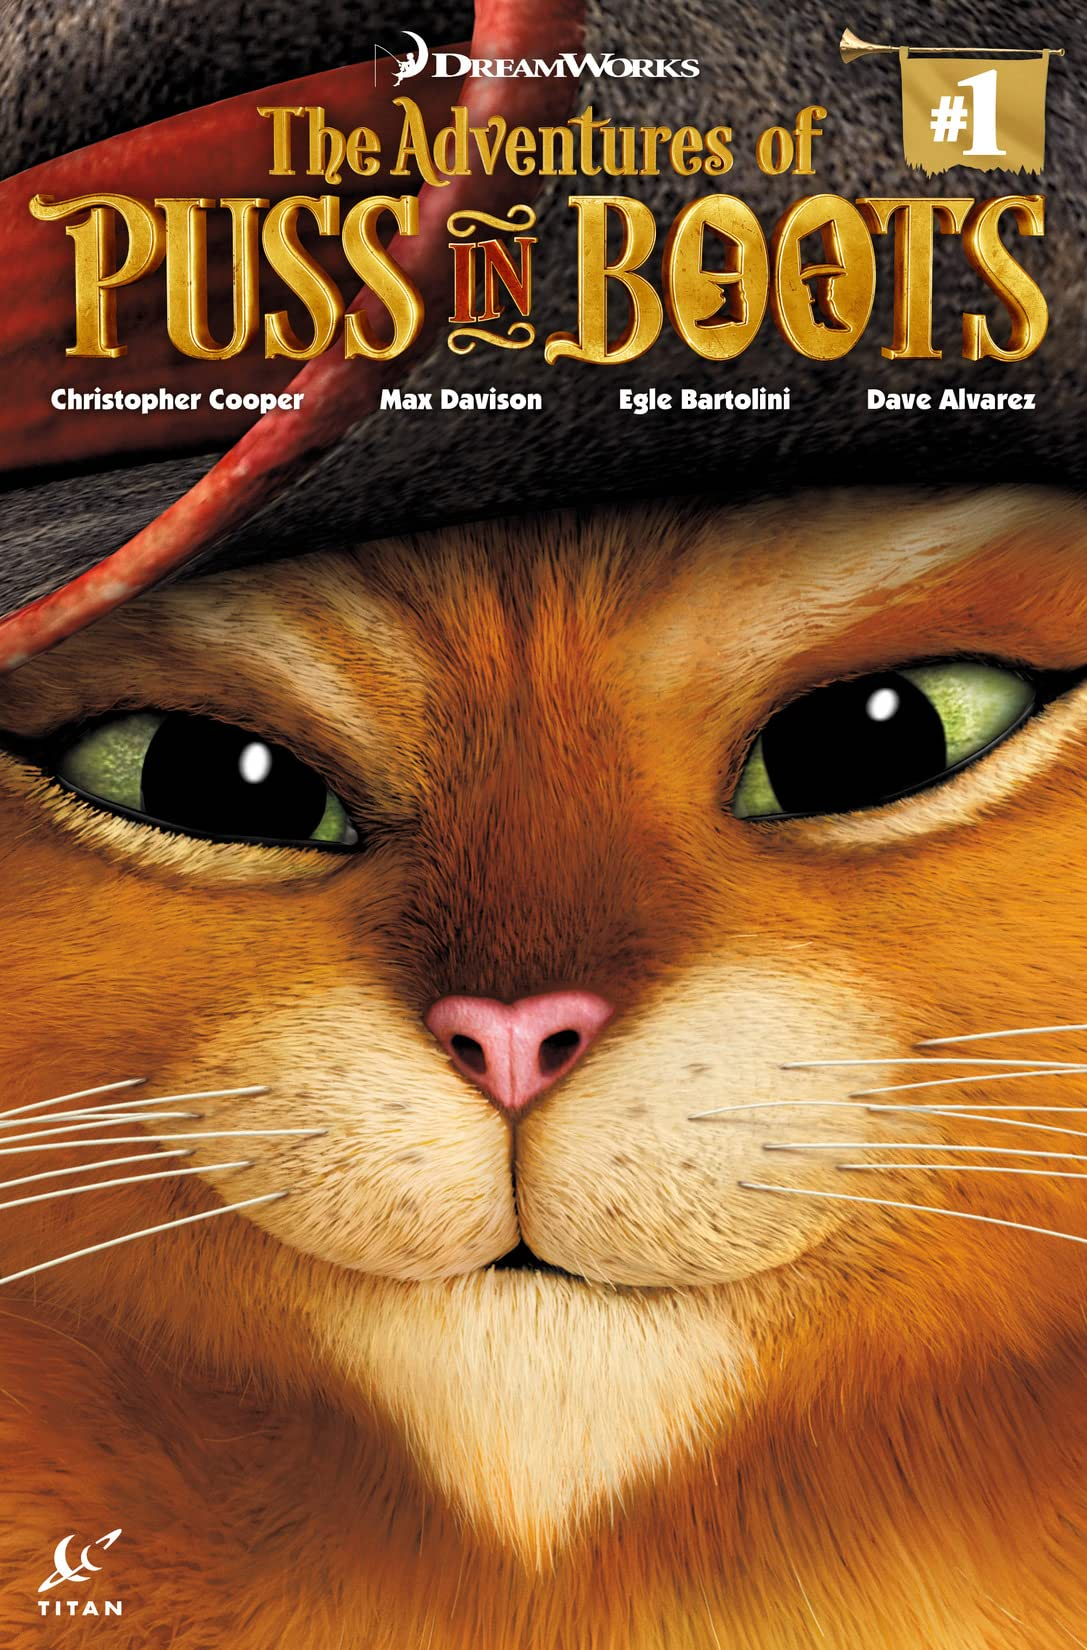 Puss In Boots #1